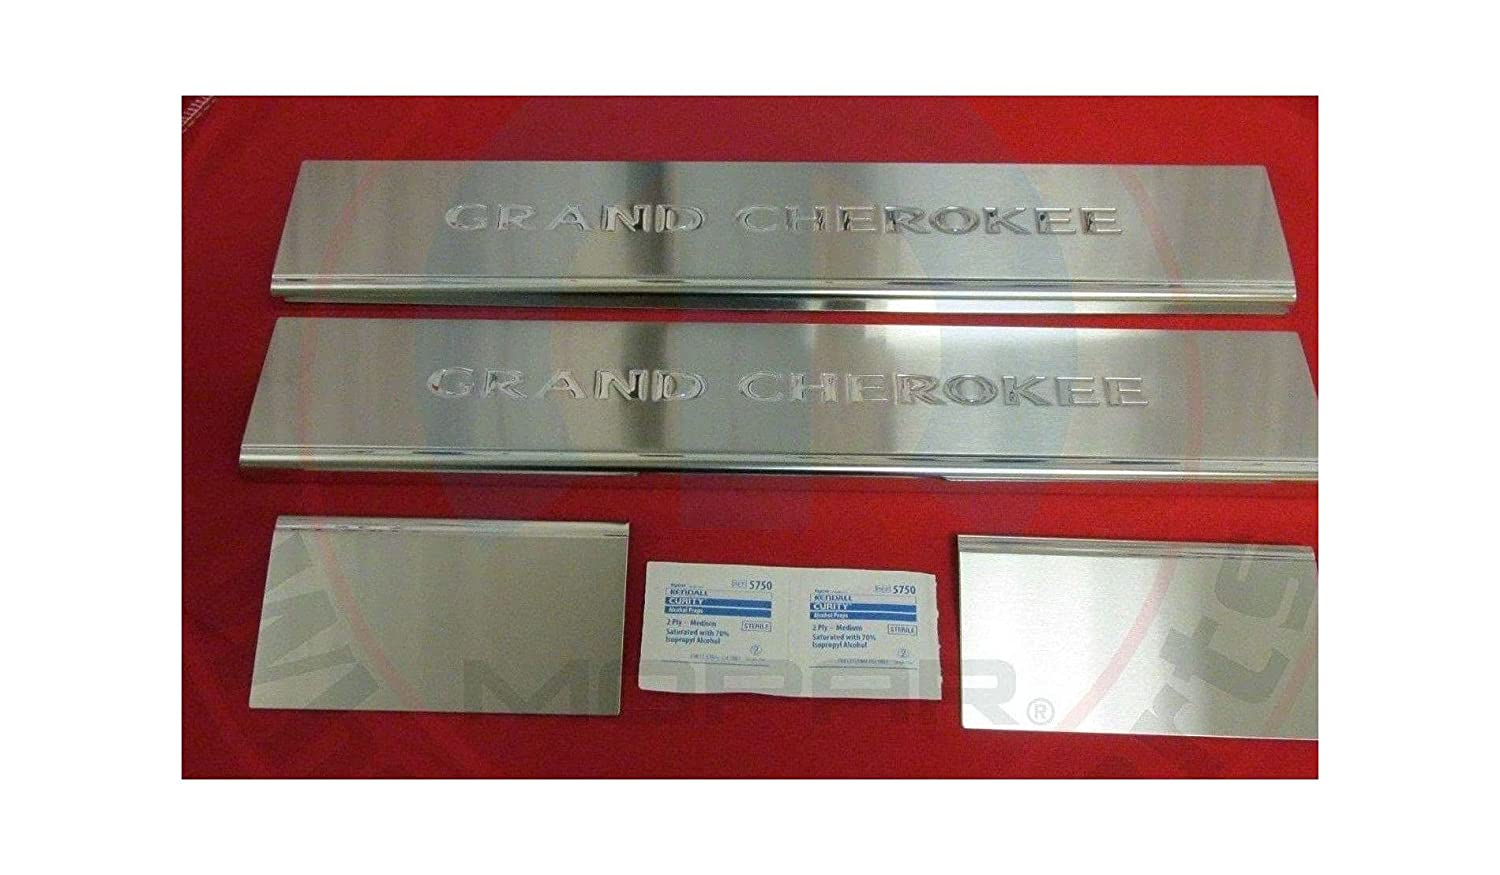 J Grand Chicago Mall Cherokee Stalnless Steel Door Slll 082212 New Max 48% OFF Guards OEM